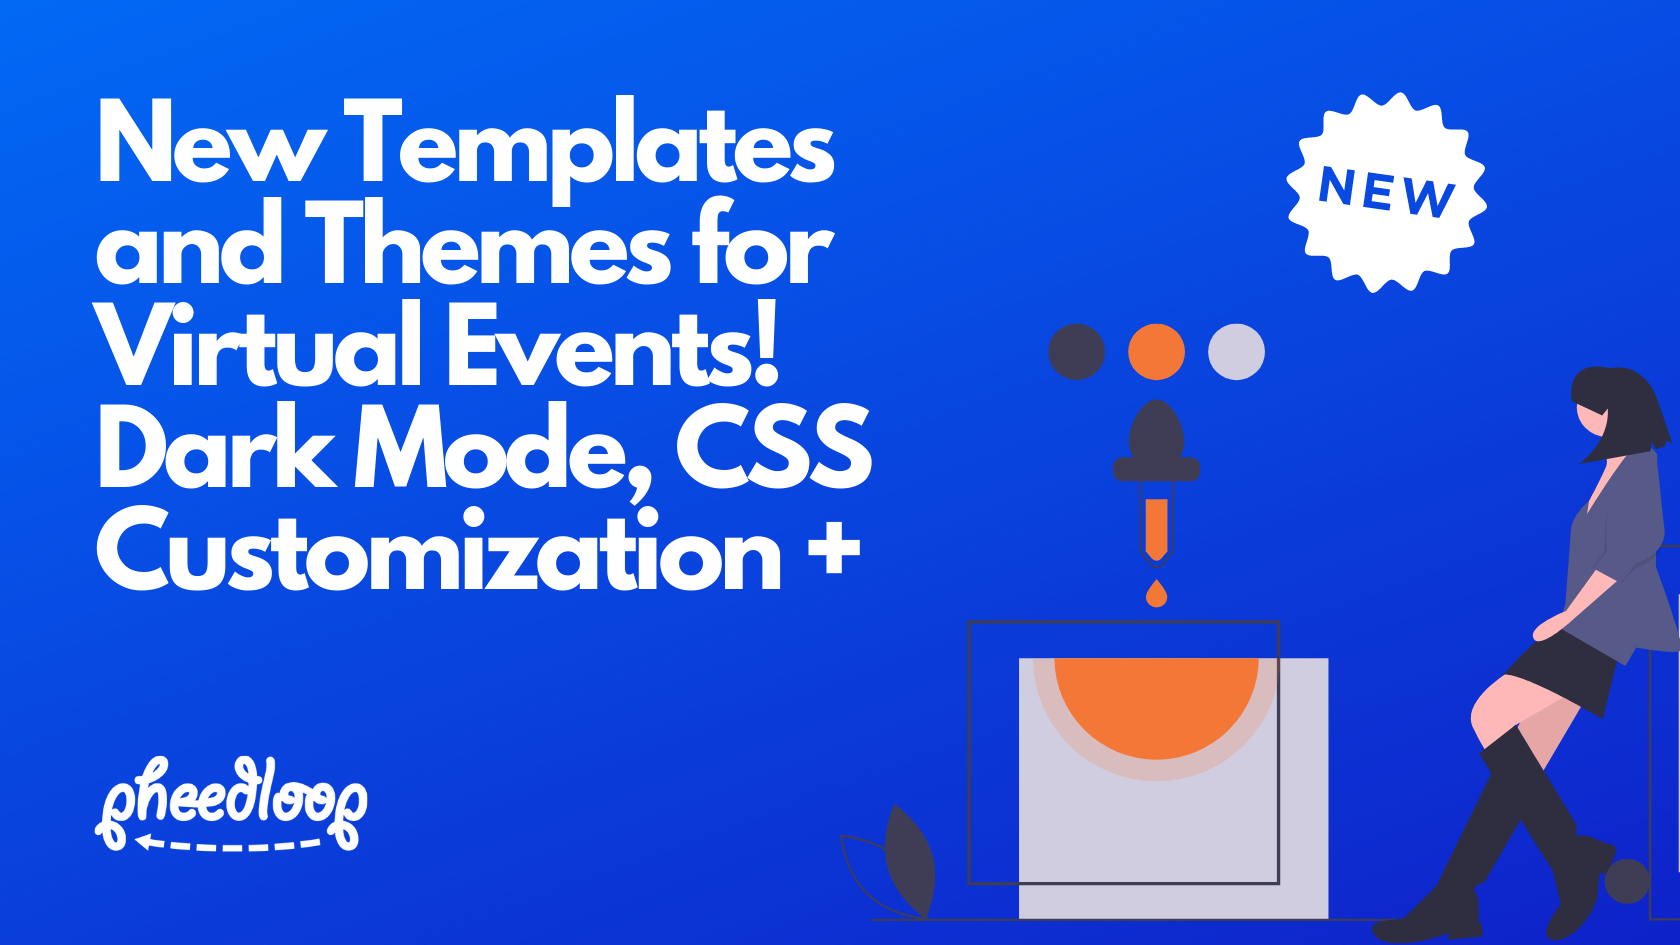 New Templates and Themes for Virtual Events, Dark Mode, and More Customization Options!